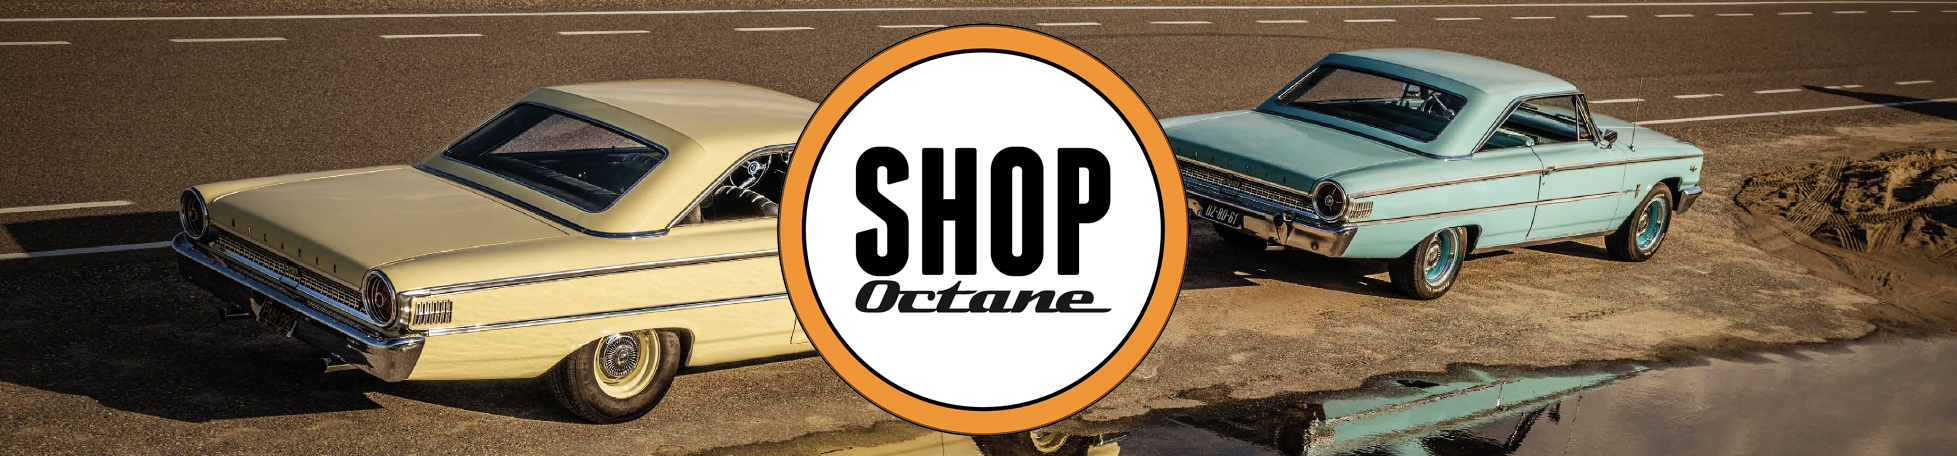 octanemagazine-shop